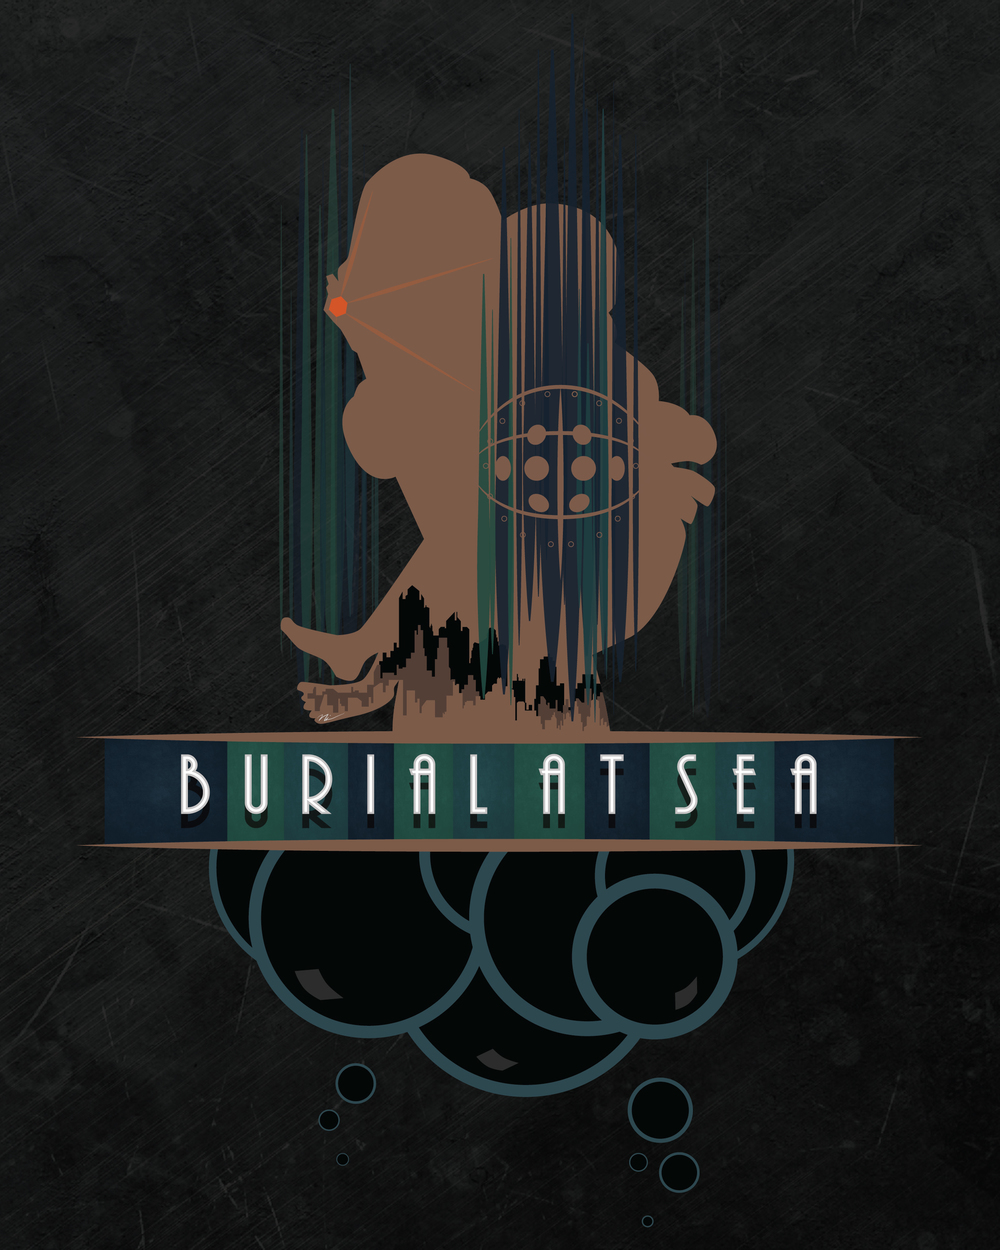 Bioshock-Infinite-Burial-at-Sea-Logo.jpg